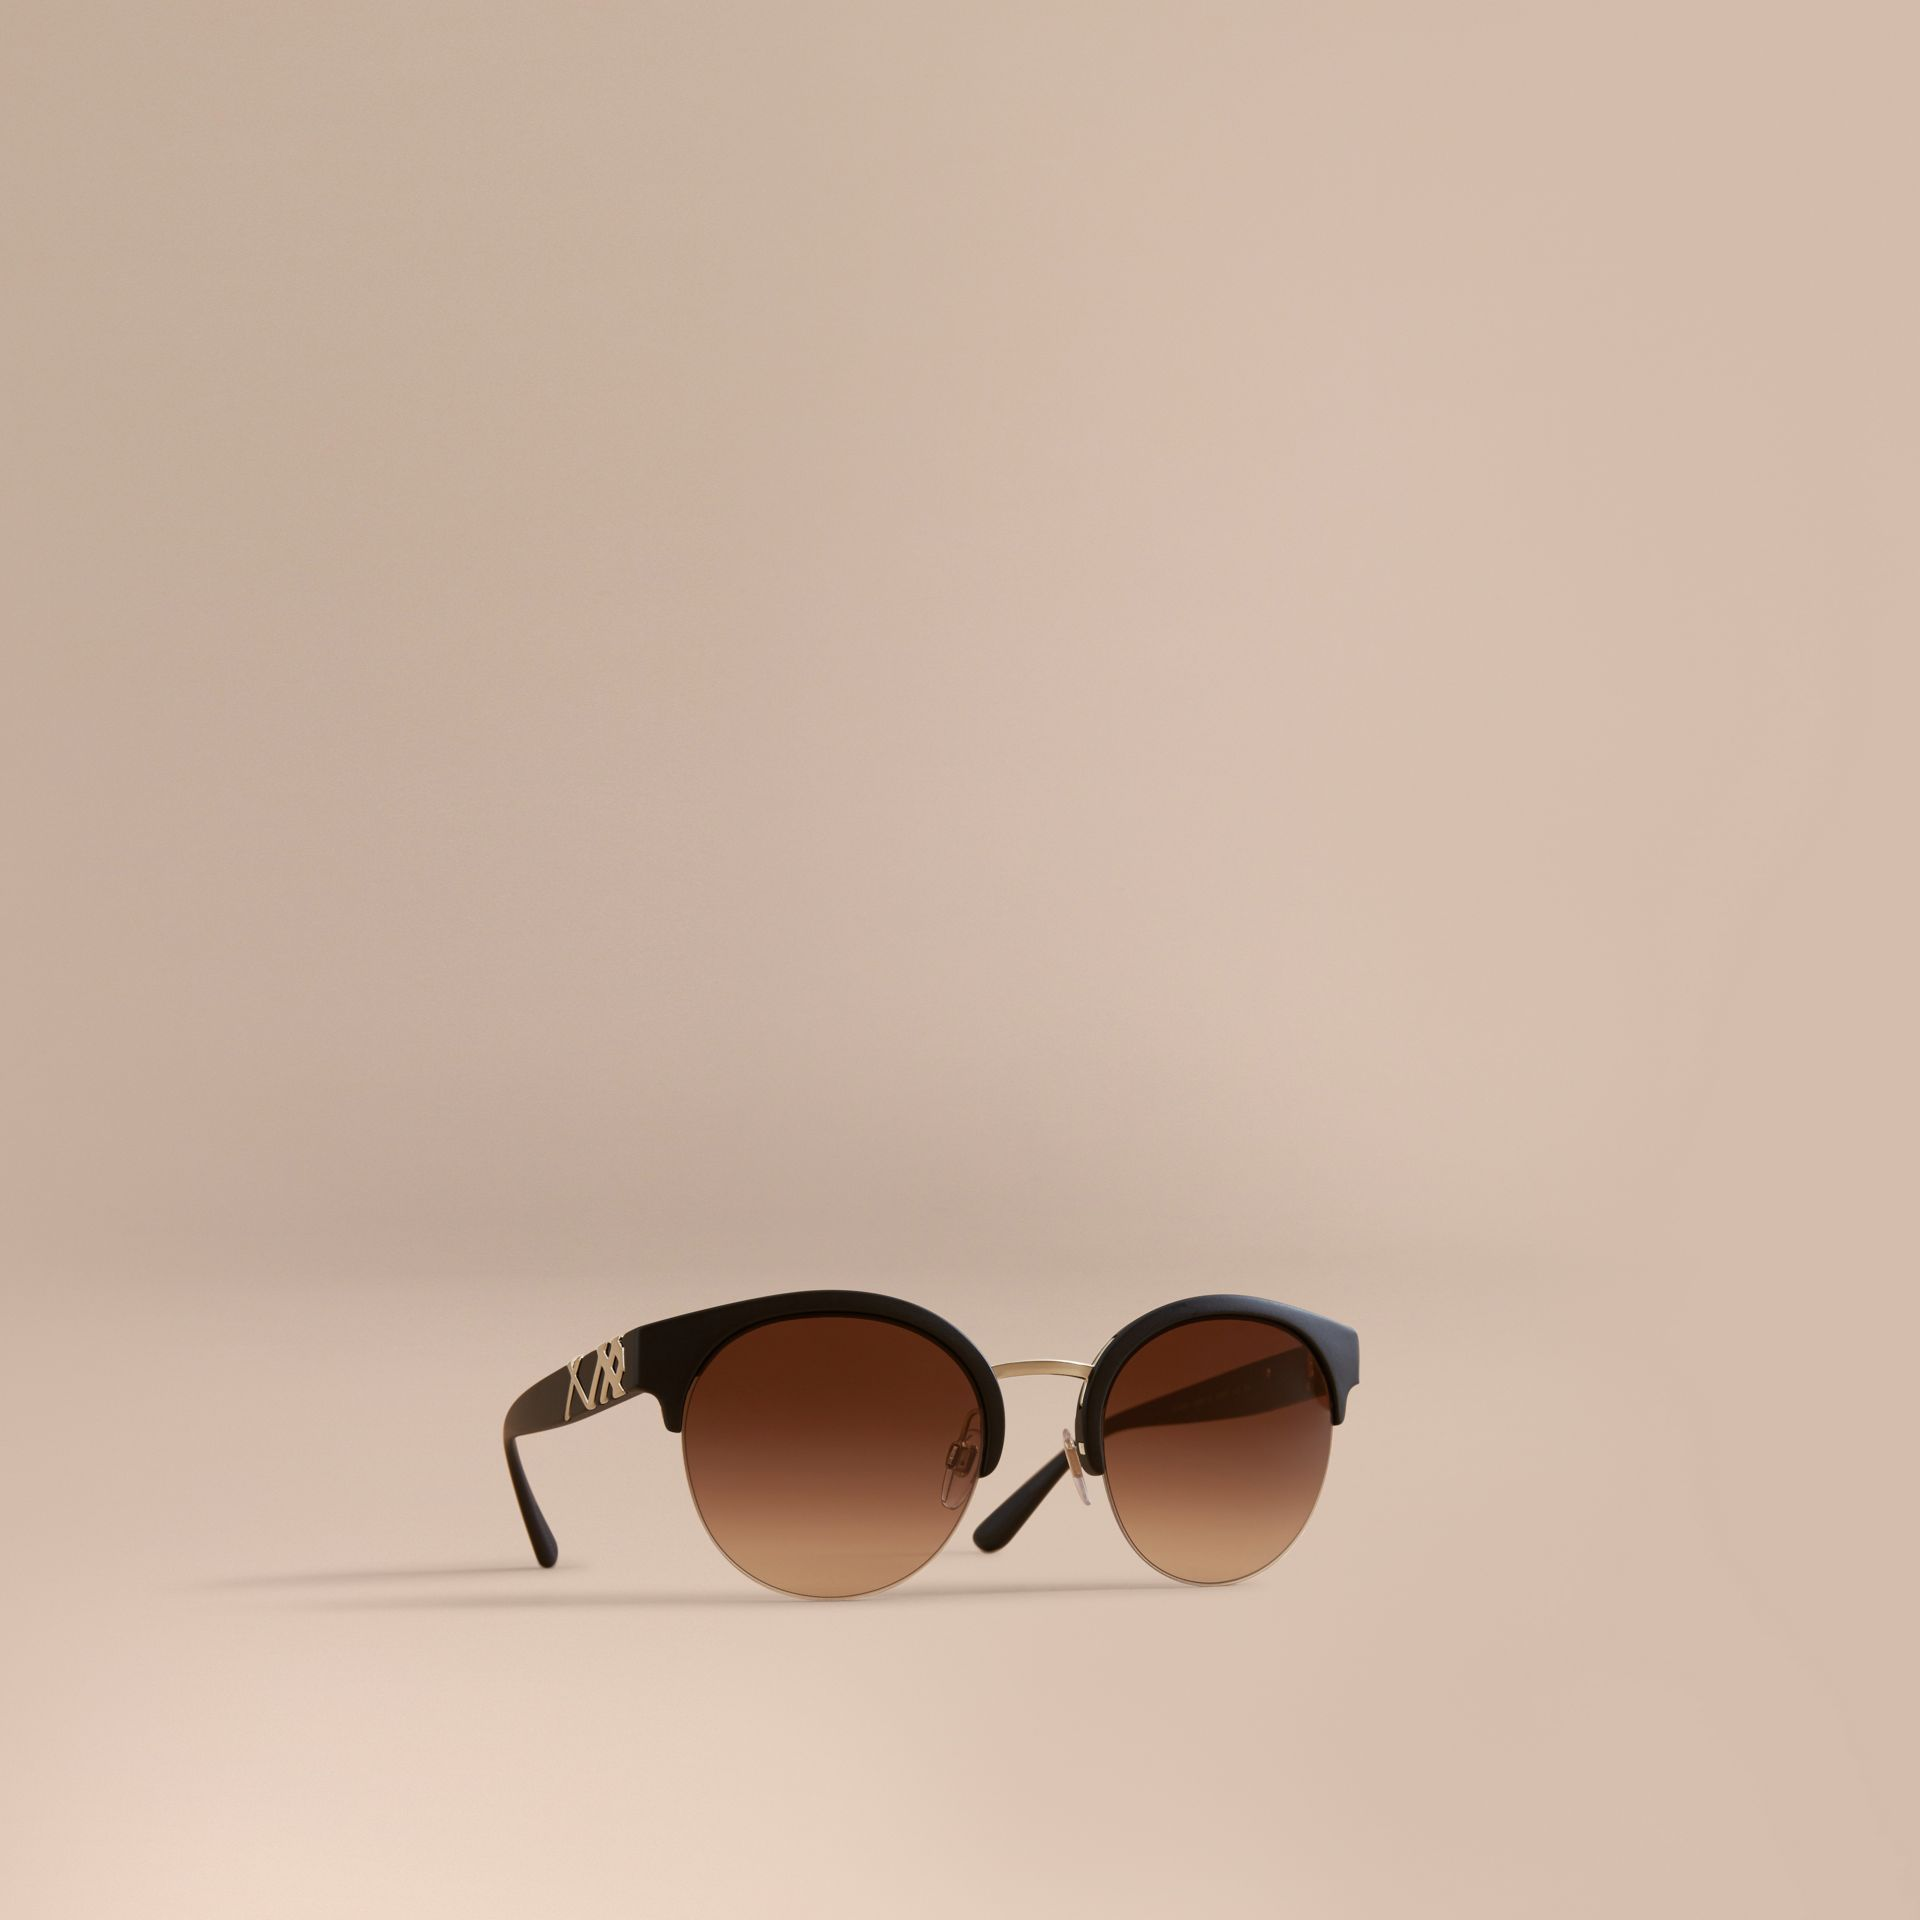 Check Detail Round Half-frame Sunglasses in Black - Women | Burberry - gallery image 1